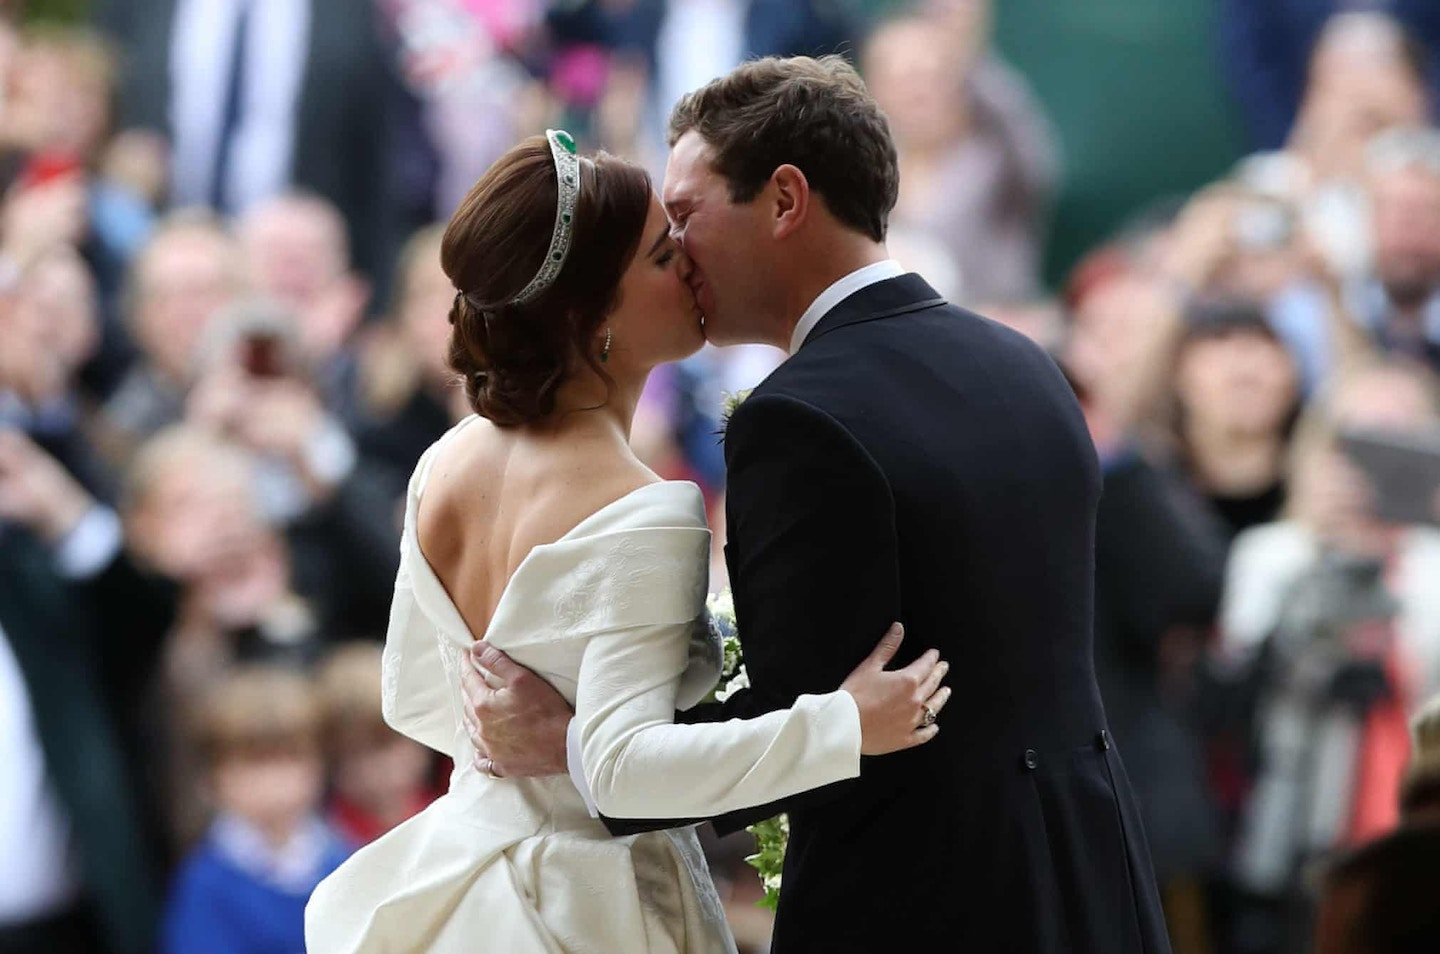 Royal Wedding of Princess Eugenie and Jack Brooksbank first kiss - Recapping the best and worst dressed guests at the royal wedding, as well as all of Princess Eugenie's dress, hair and makeup details.